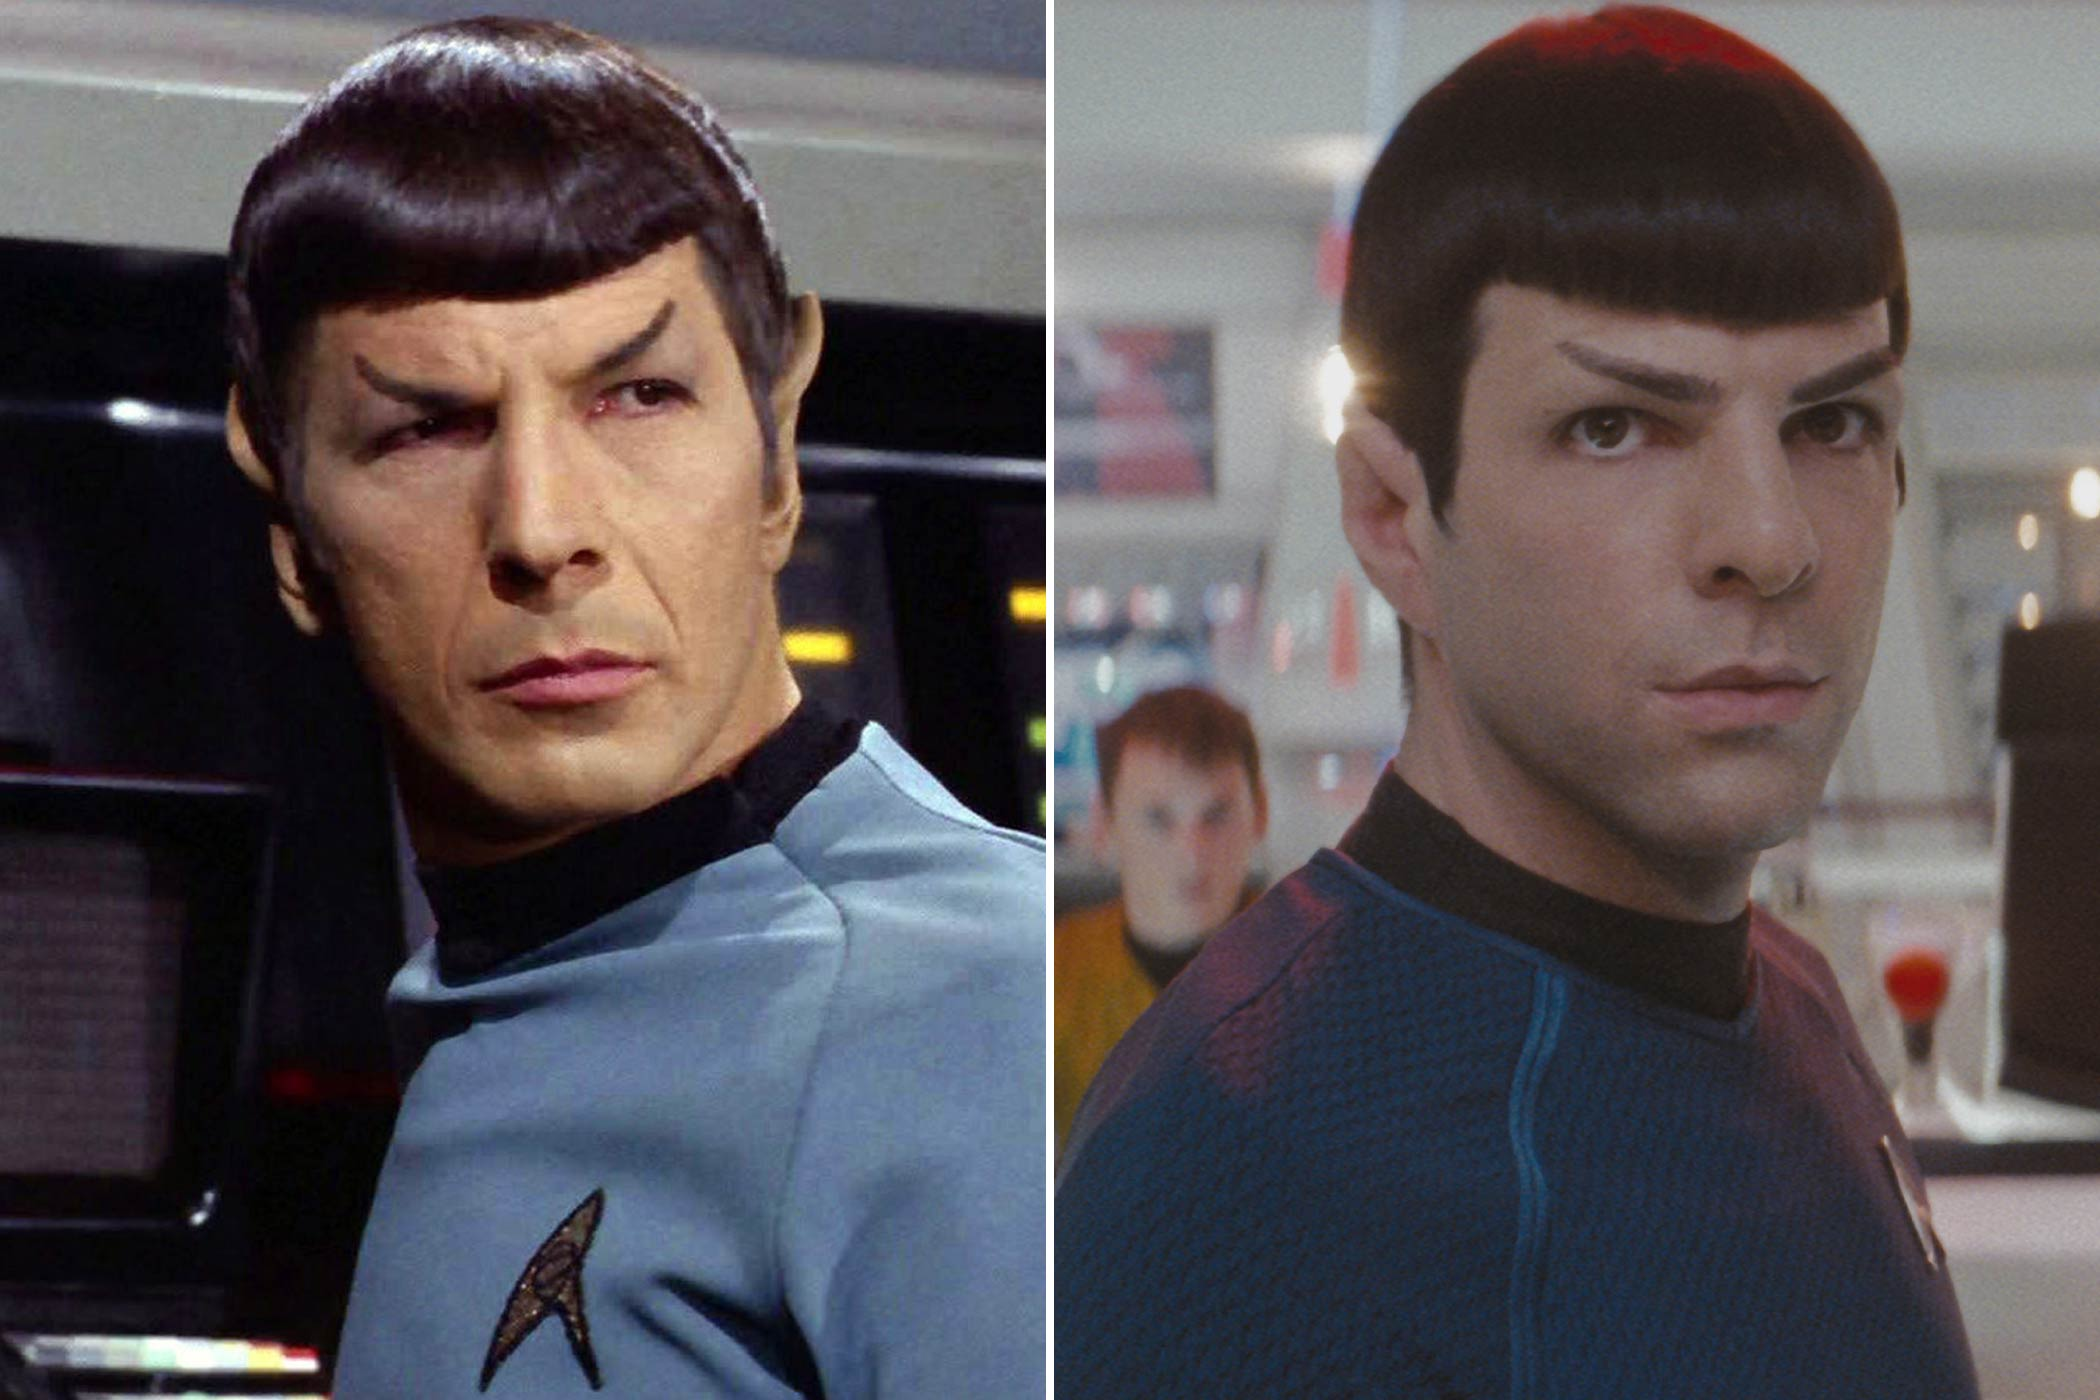 From left: Leonard Nimoy and Zachary Quinto as Mr. Spock